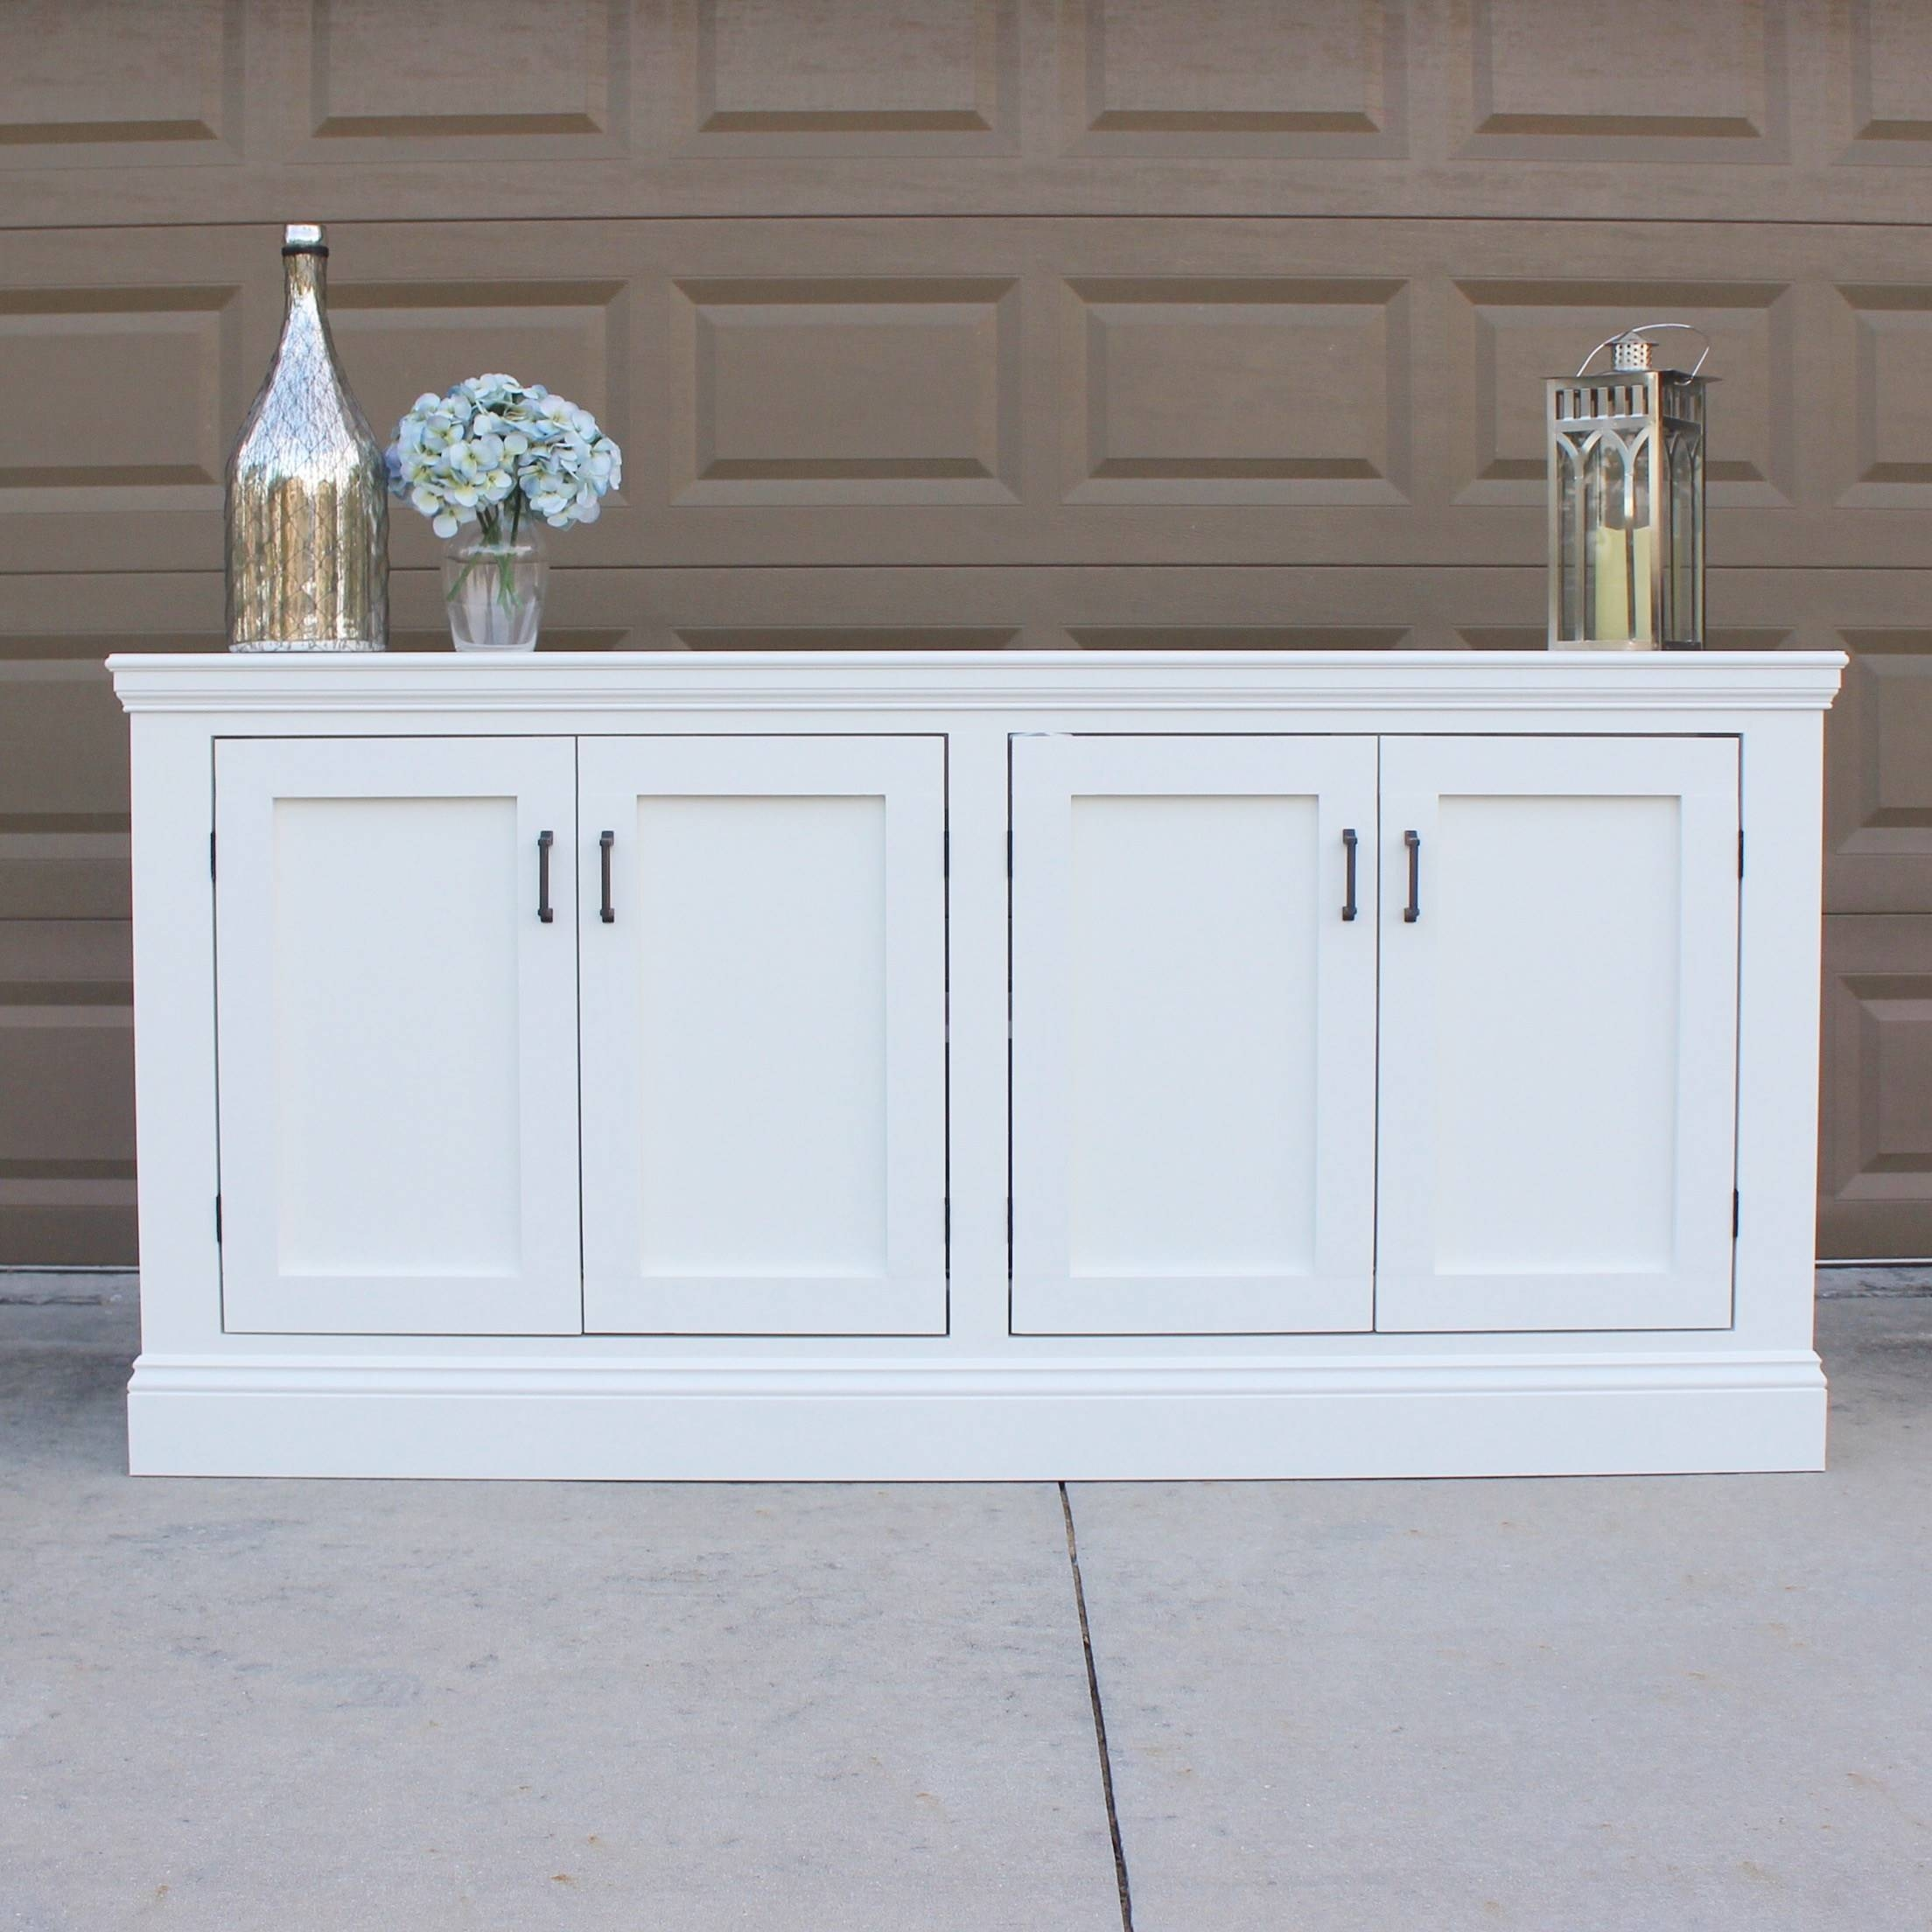 Beautiful Restoration Hardware Sideboard – Bjdgjy Pertaining To Diy Sideboards (View 15 of 15)